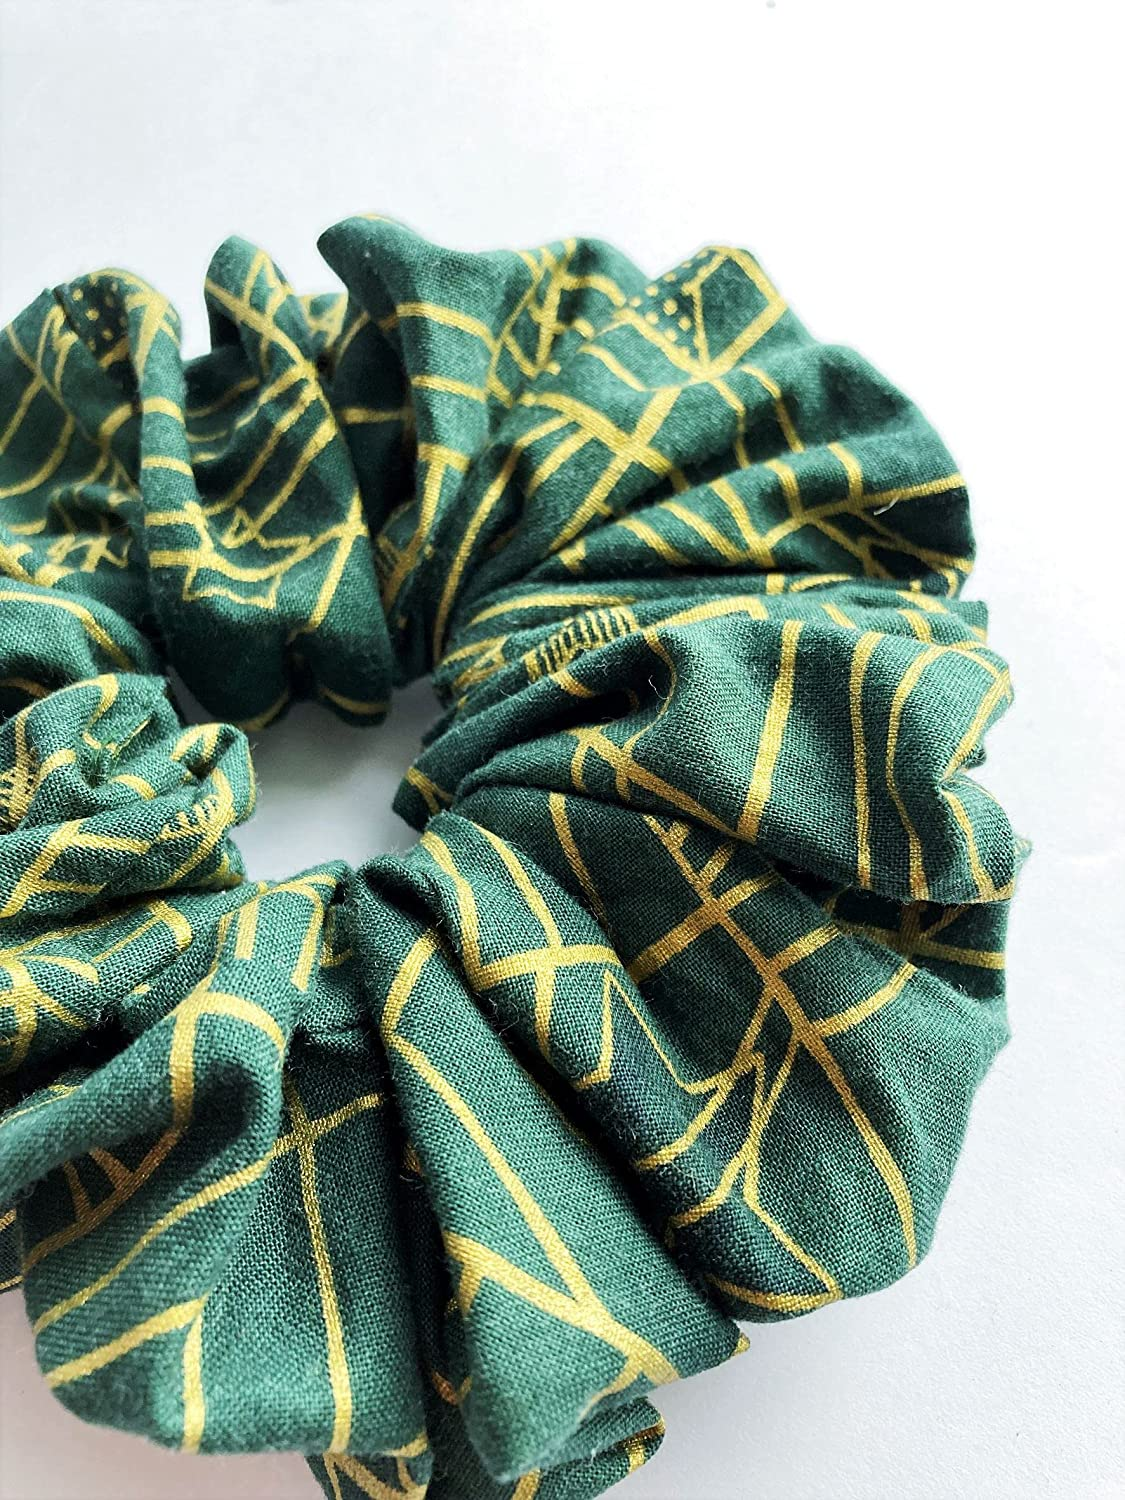 Orion Outlet SALE - 7 inch Jumbo Scrunchie Discount is also underway Gr Print Fabric Forest Cotton